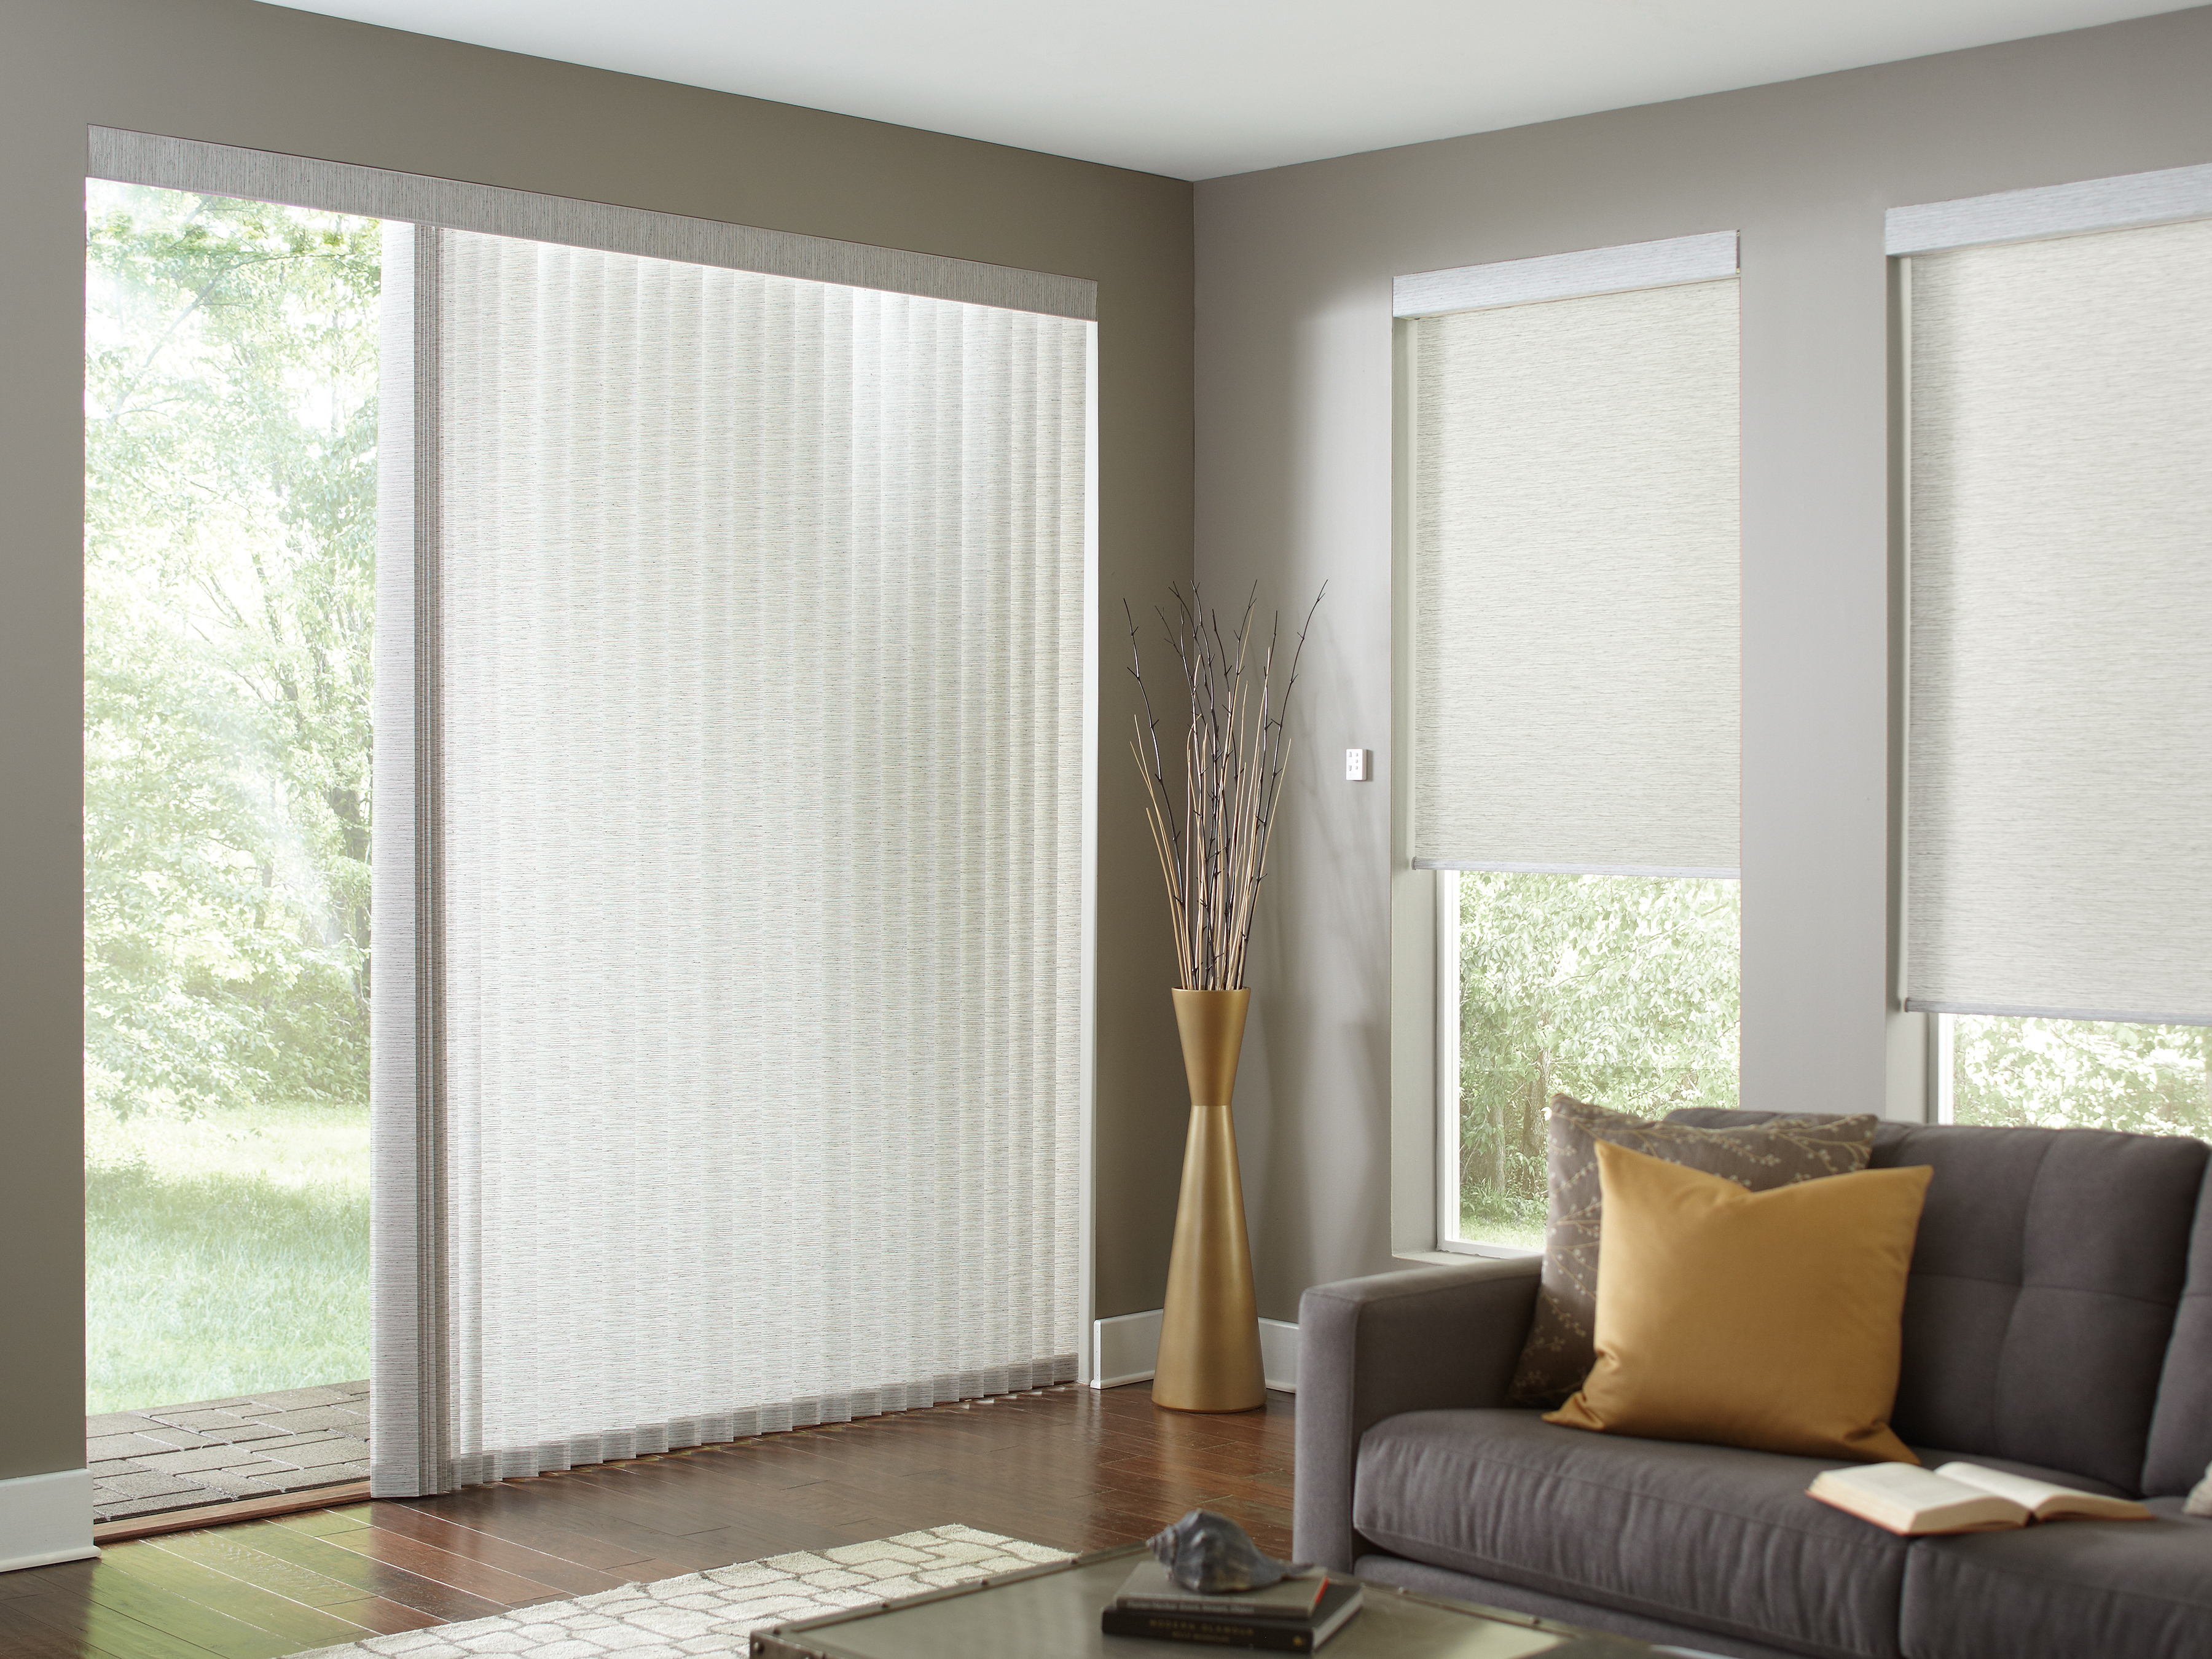 Genesis Qmotion Roller Shade & Discoveries Companion